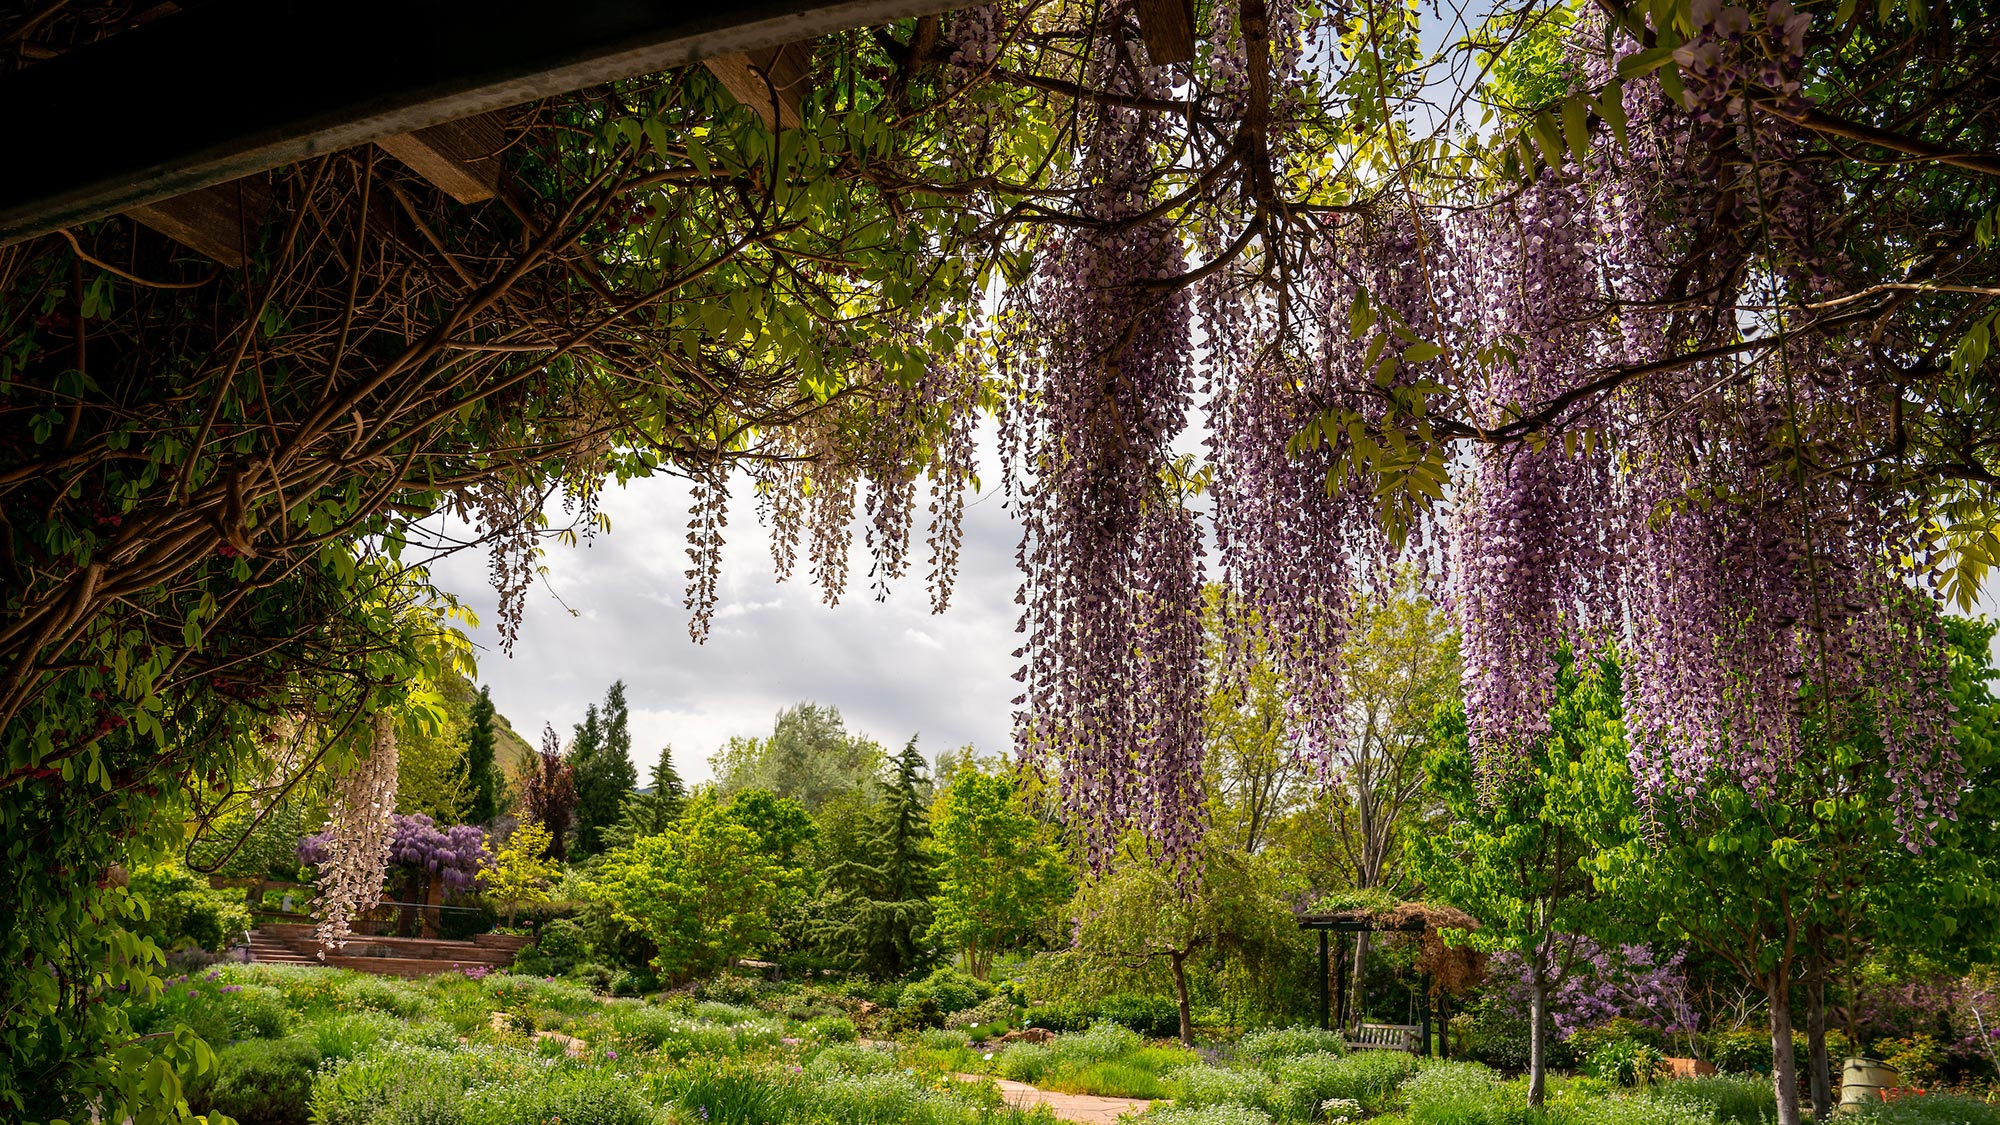 Lavender wisteria cascades off of a trellis in the foreground with bright green conifers and other plants in the background.